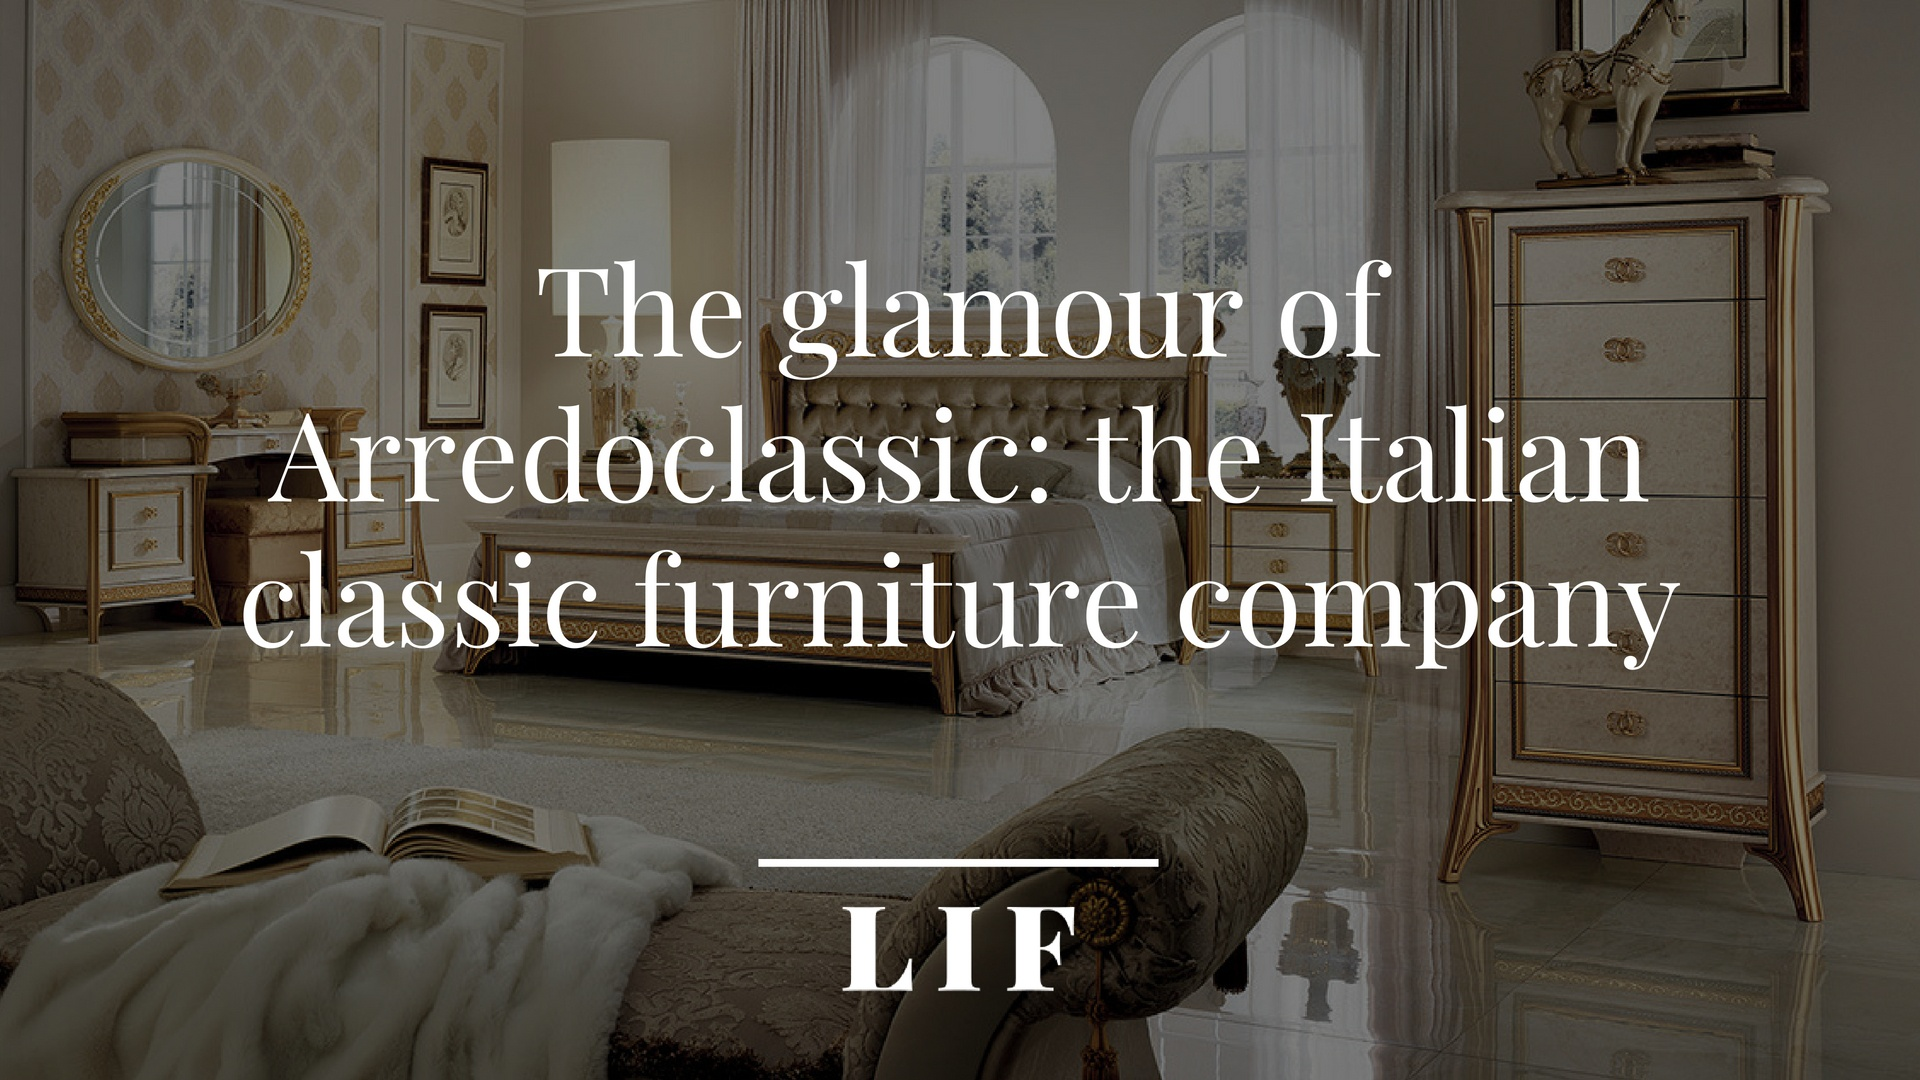 The glamour of Arredoclassic: the Italian classic furniture company